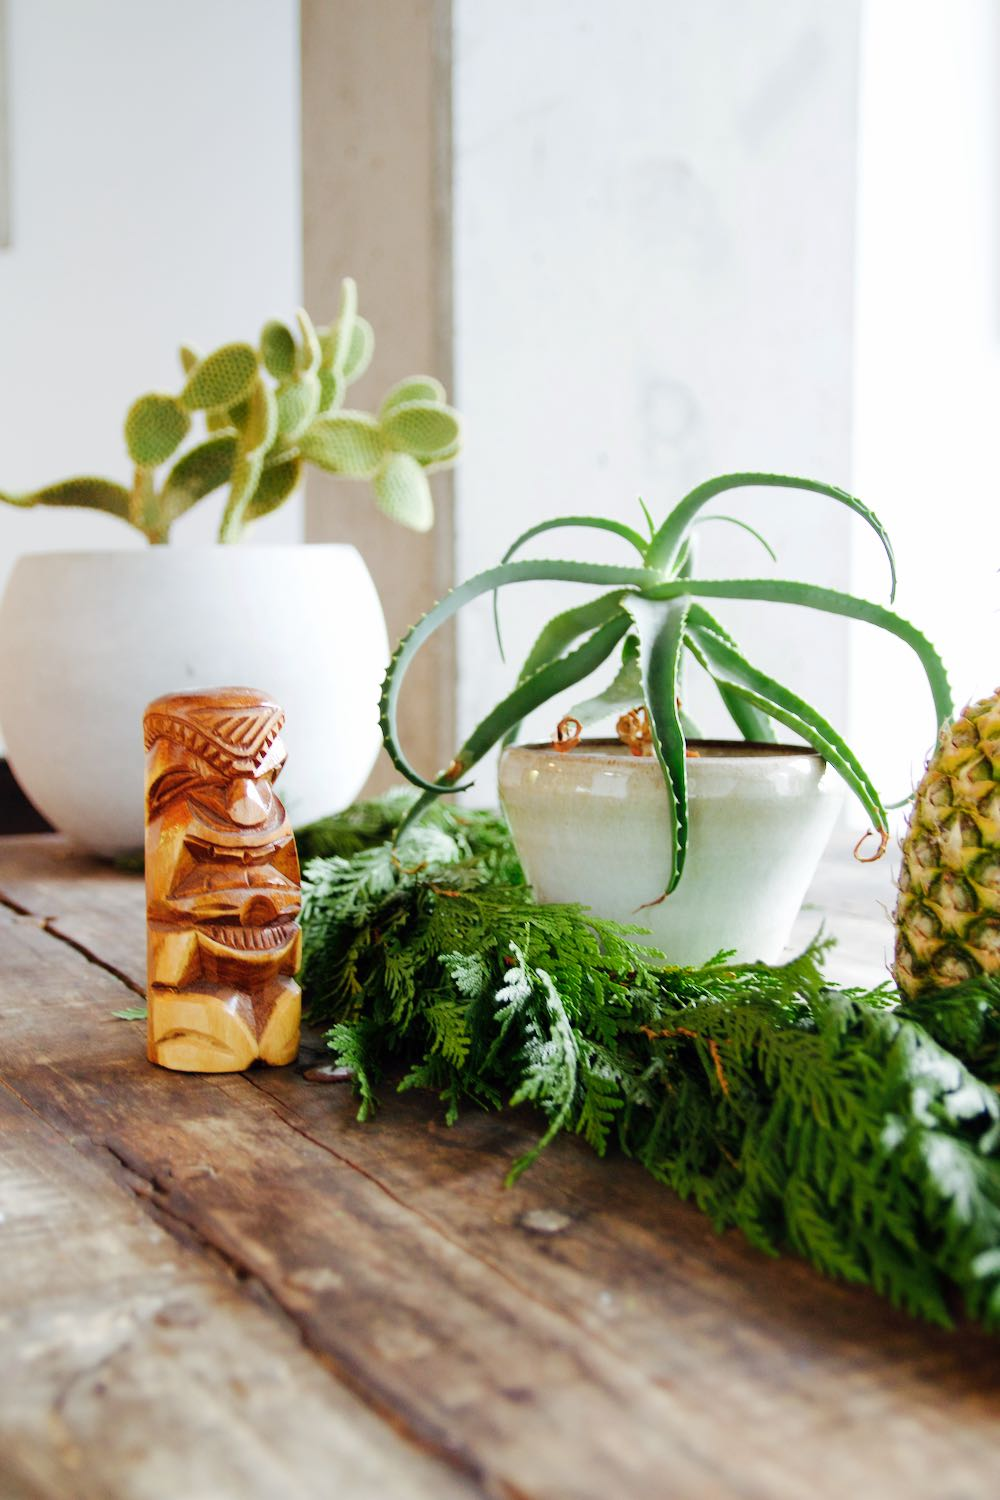 succulents, a tiki cup and a garland for a retro holiday tablescape